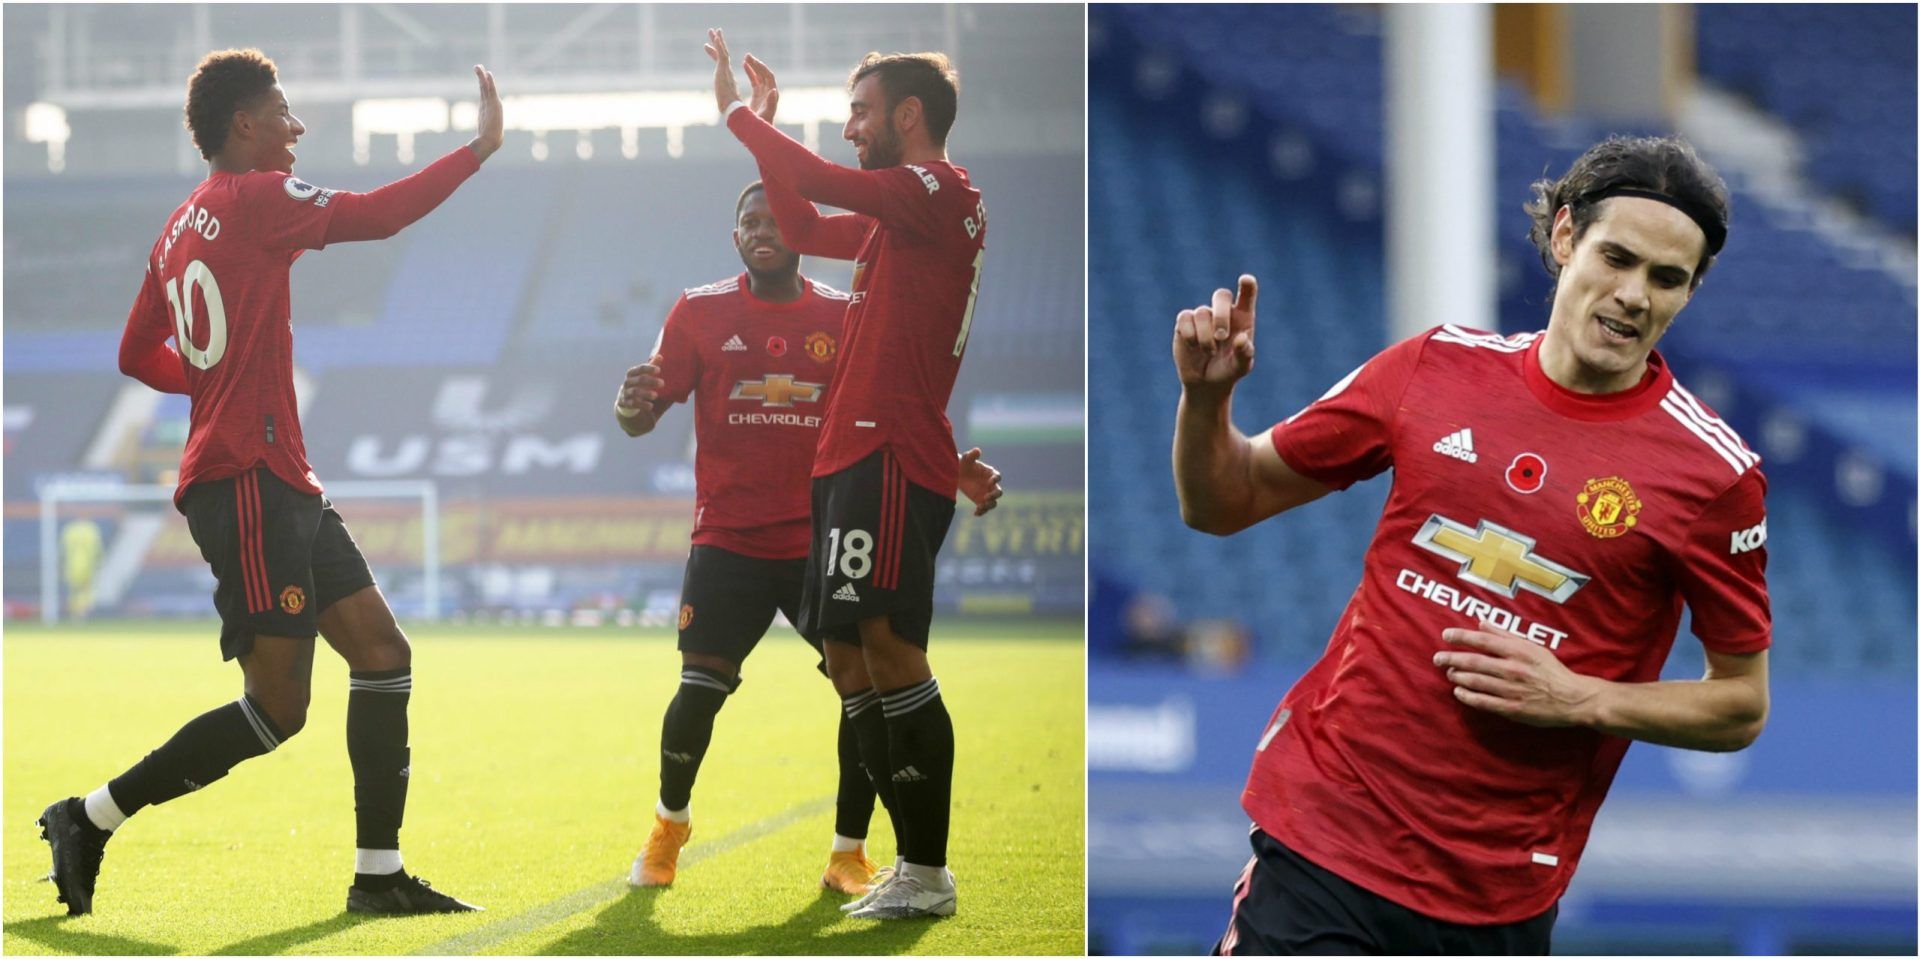 Manchester United secure 3-1 victory over Everton with a last-minute strike from Edinson Cavani - THE SPORTS ROOM